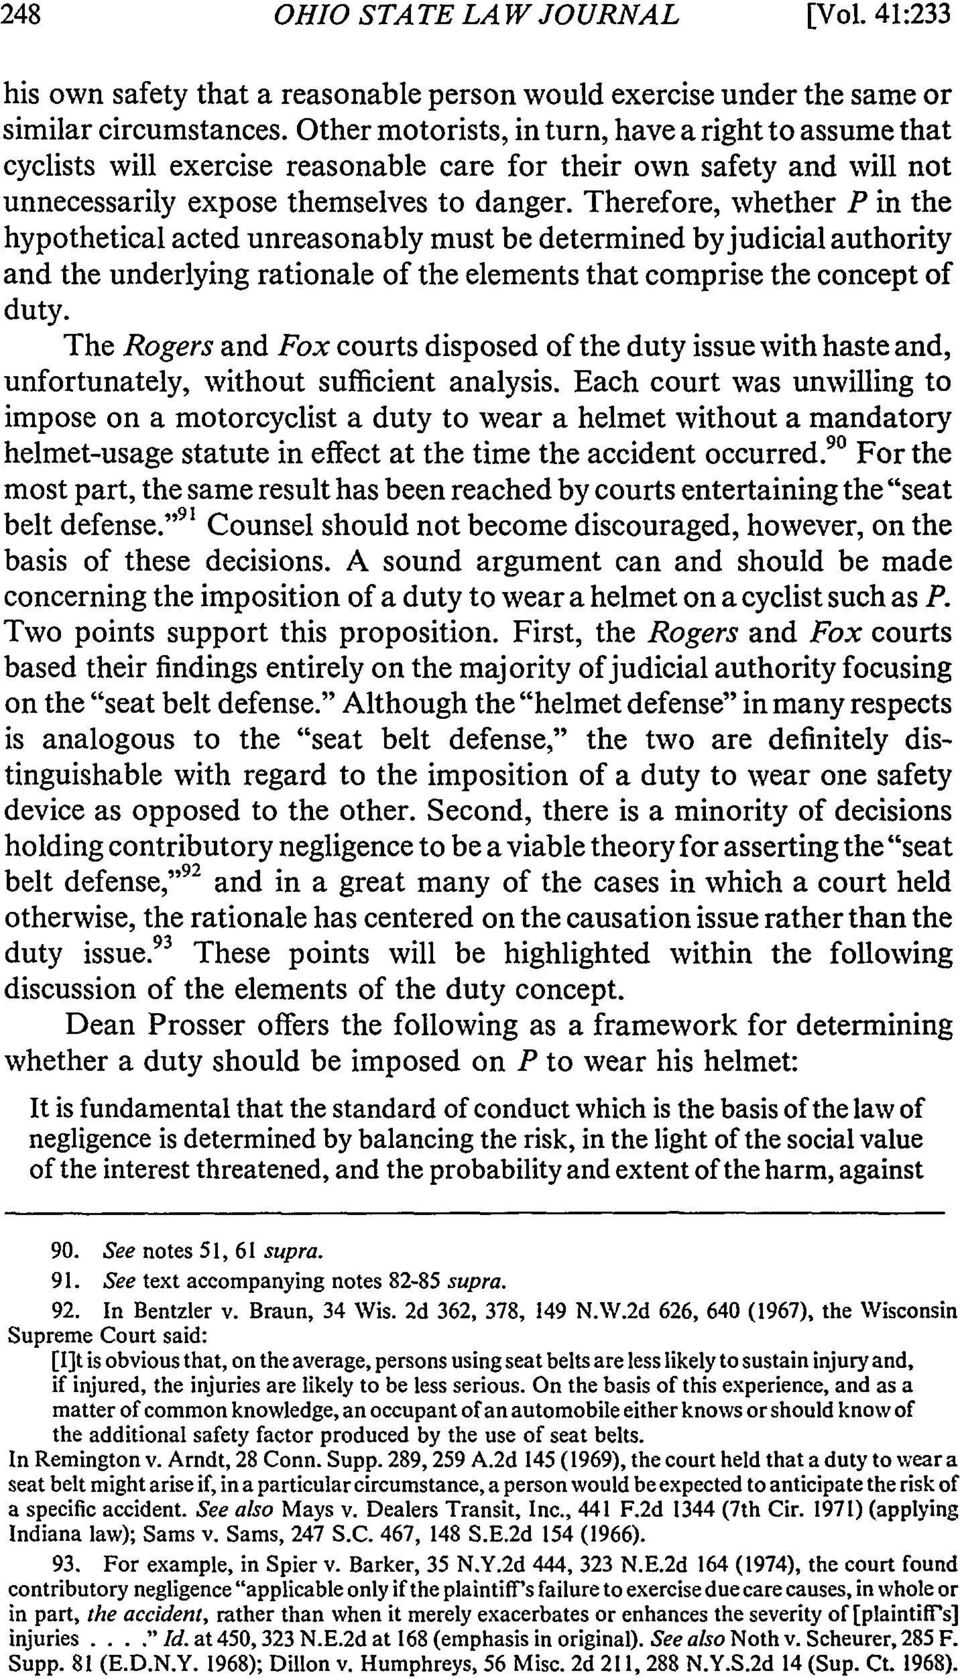 Therefore, whether P in the hypothetical acted unreasonably must be determined by judicial authority and the underlying rationale of the elements that comprise the concept of duty.